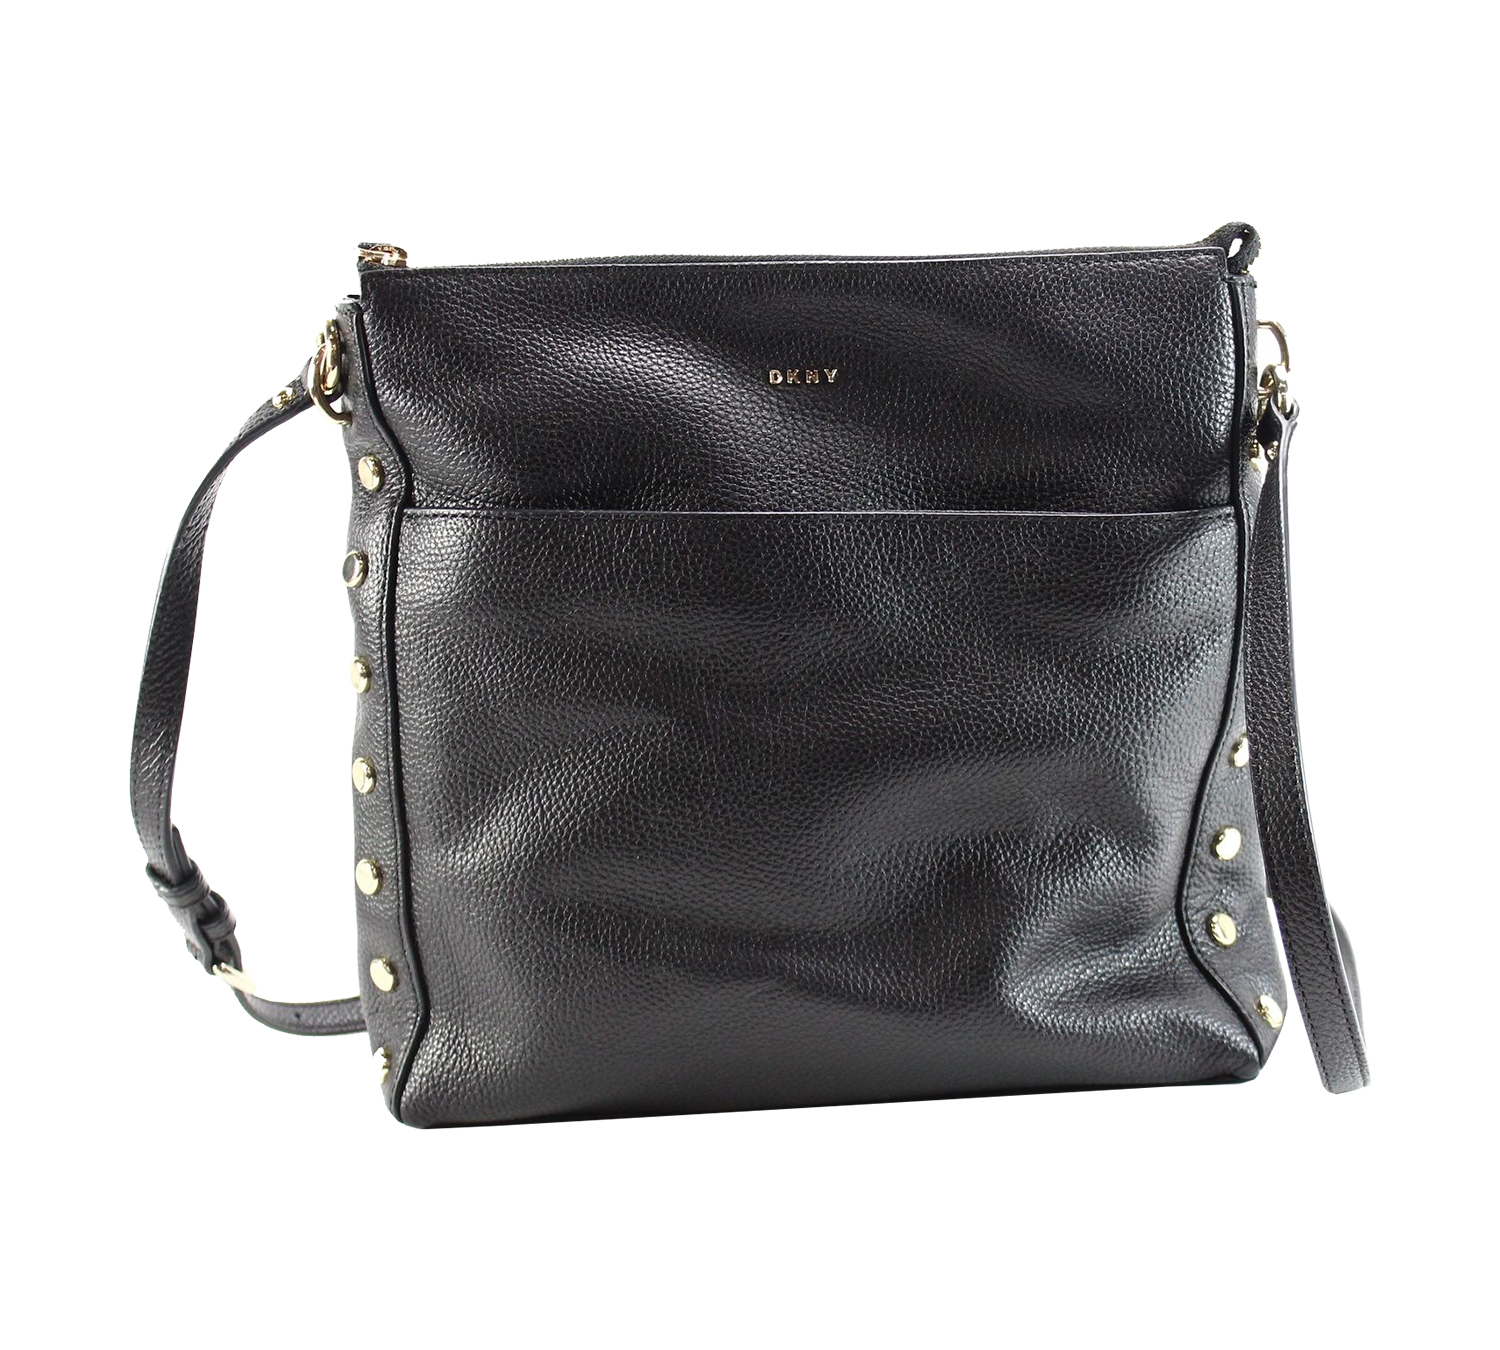 f8dcc3c6c664 Shop for DKNY Women s Chelsea Pebbled Leather Top Zip Cross Body Bag ...